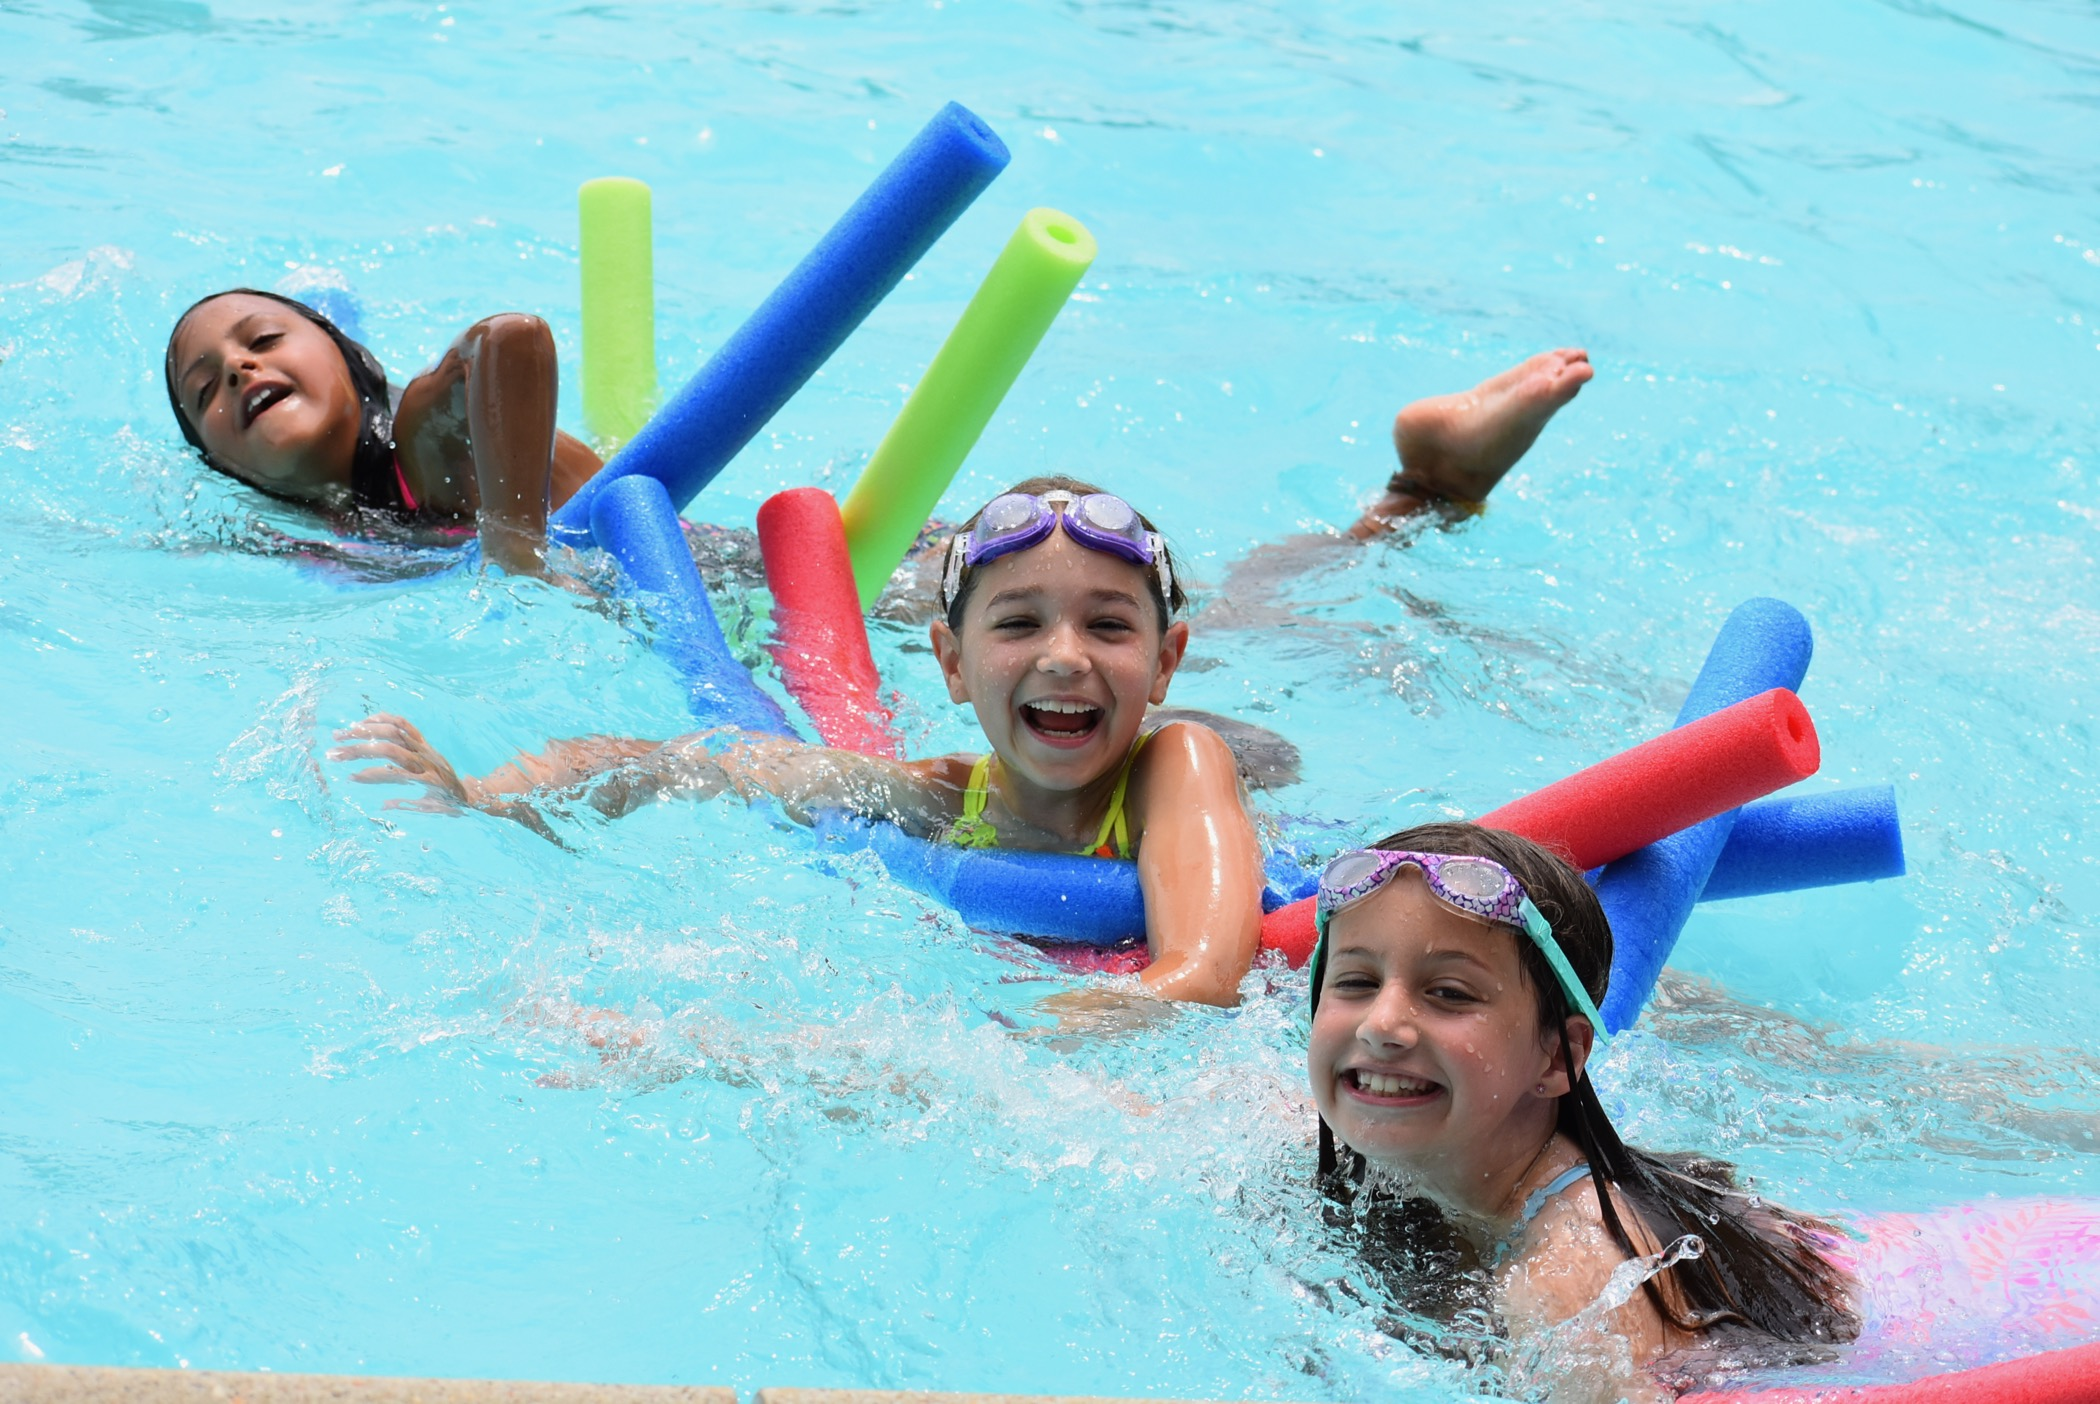 Campers swim at Liberty Lake Day Camp in Mansfield Township, N.J.